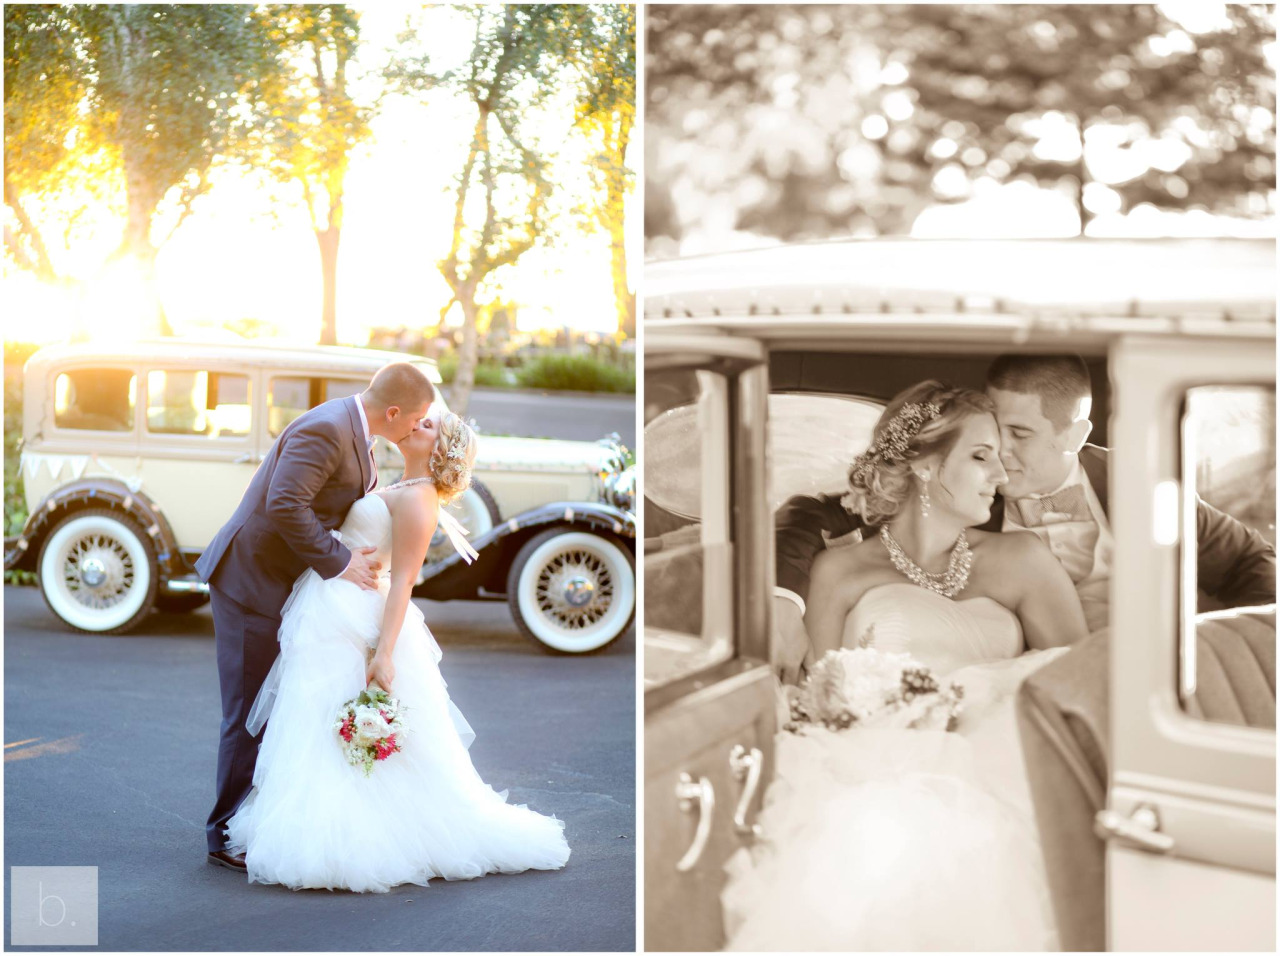 beautiful couple, vintage car and perfect light… Swoon!     ©bschwartzphotography.com